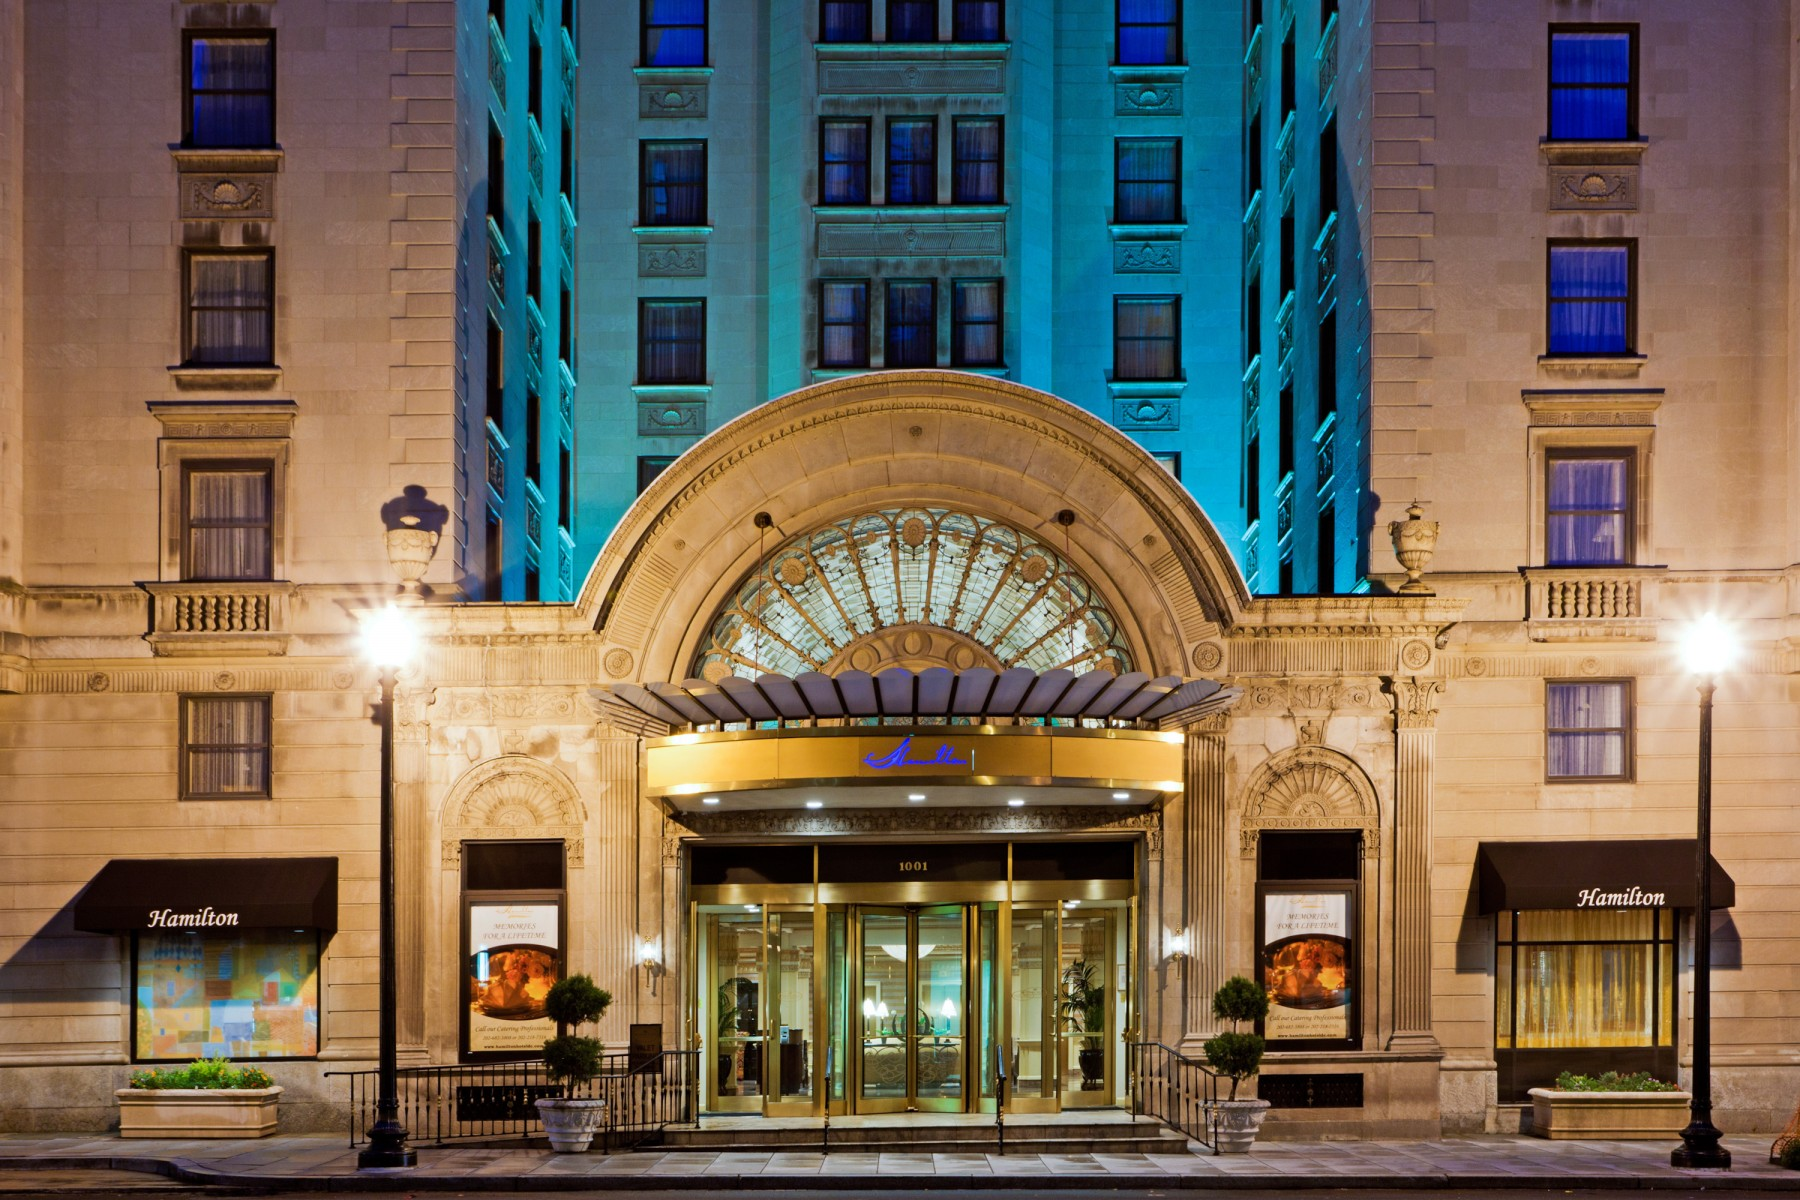 The Hamilton Hotel - Washington DC 1